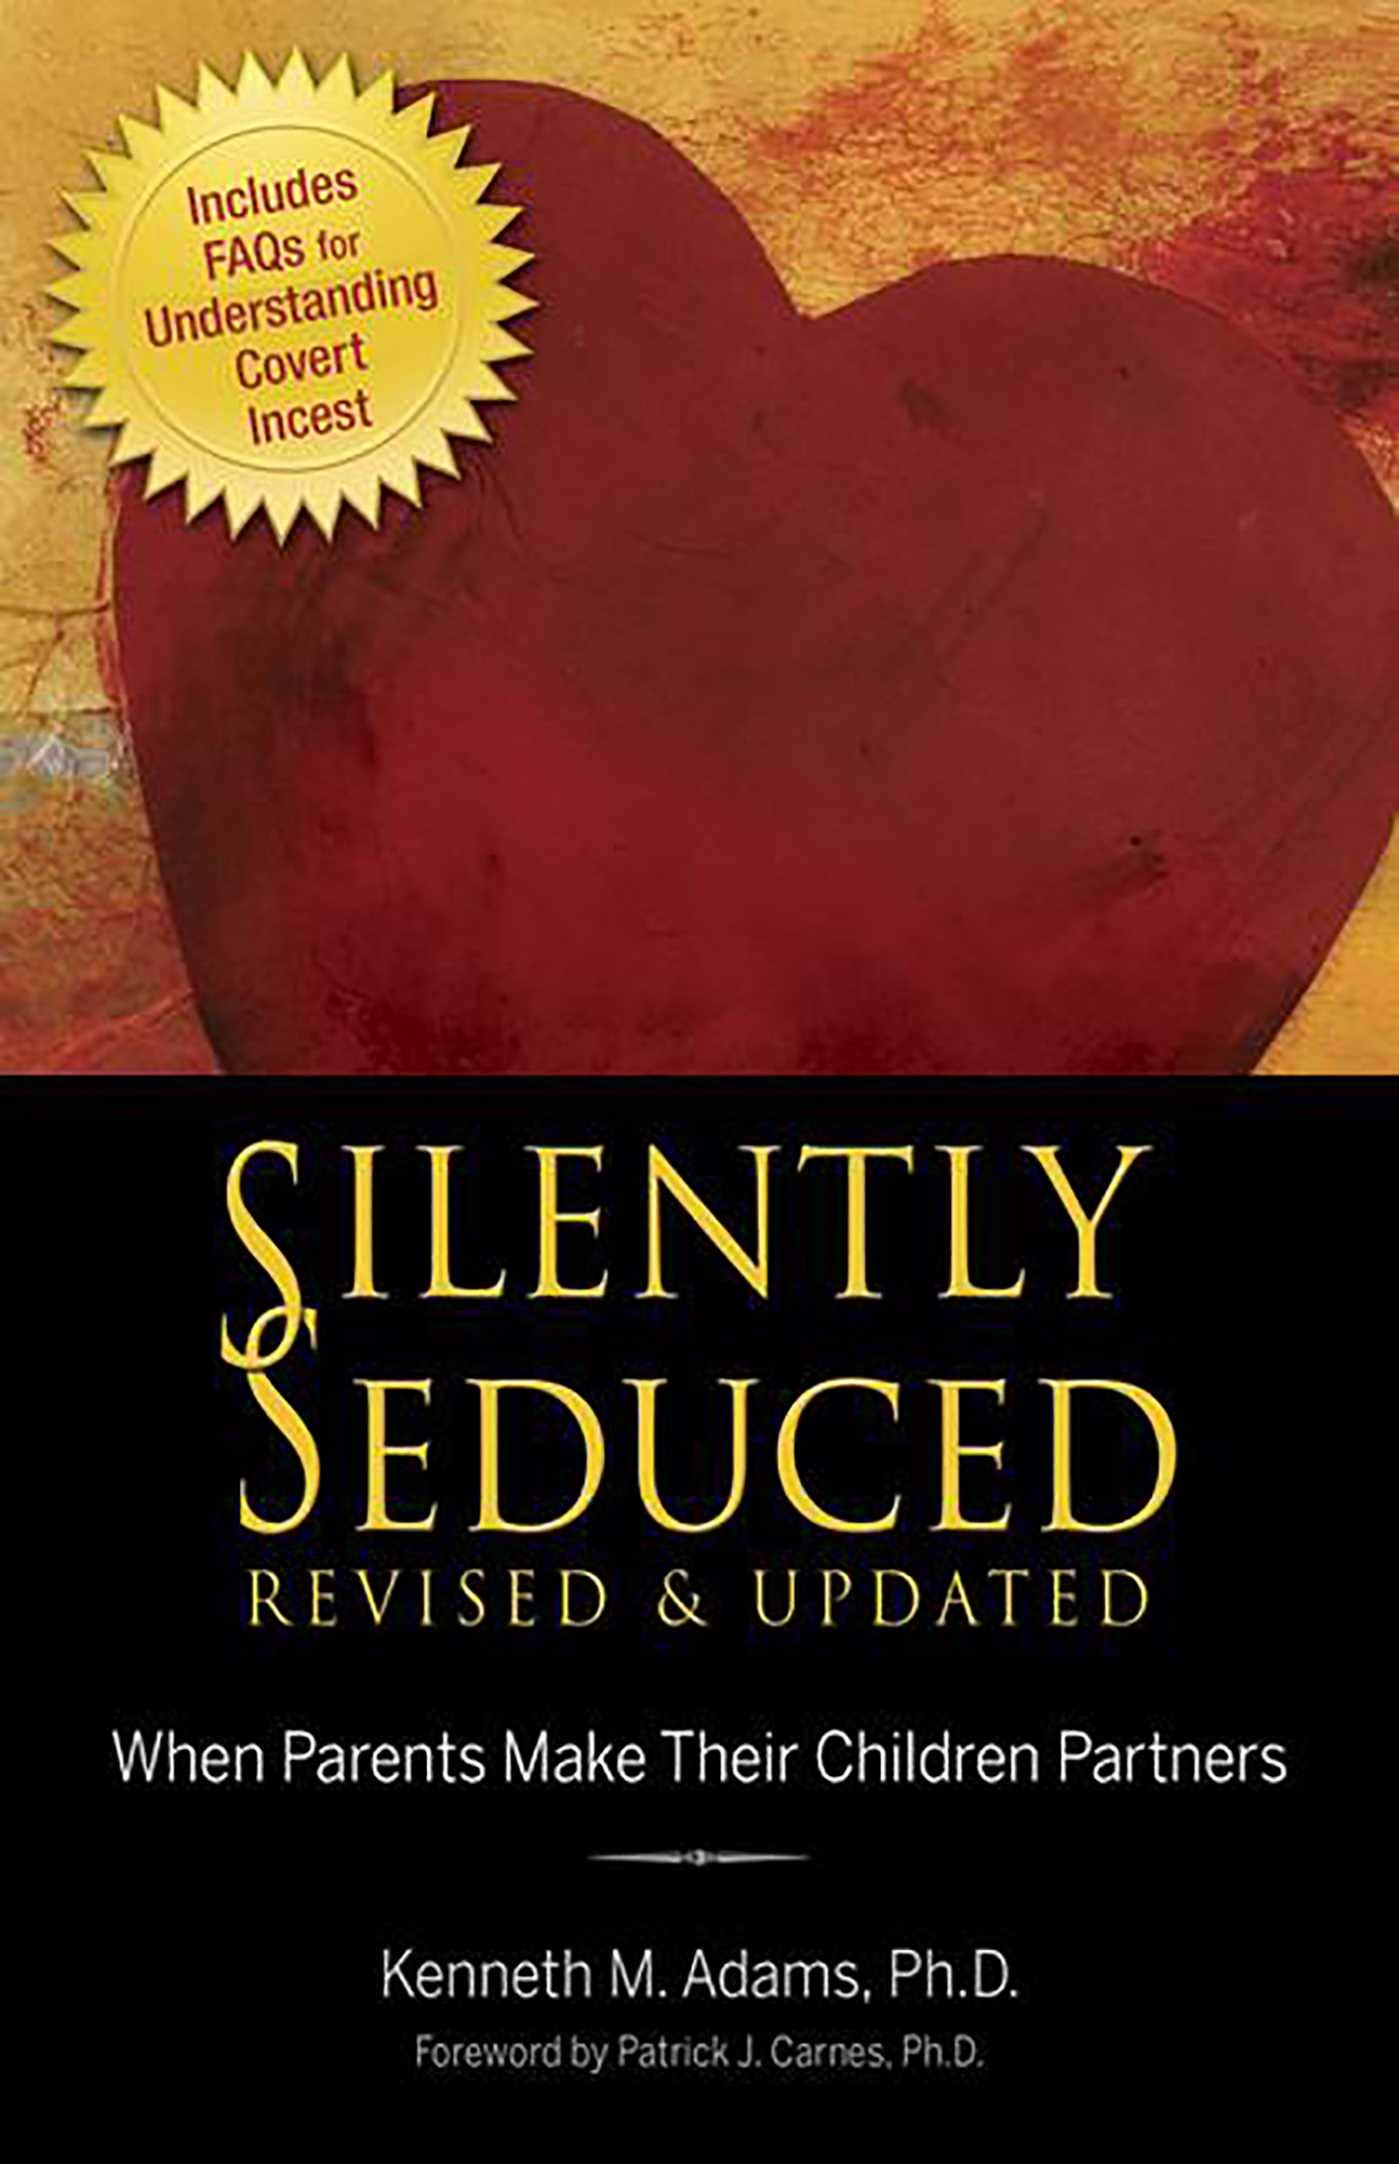 Silently Seduced: When Parents Make Their